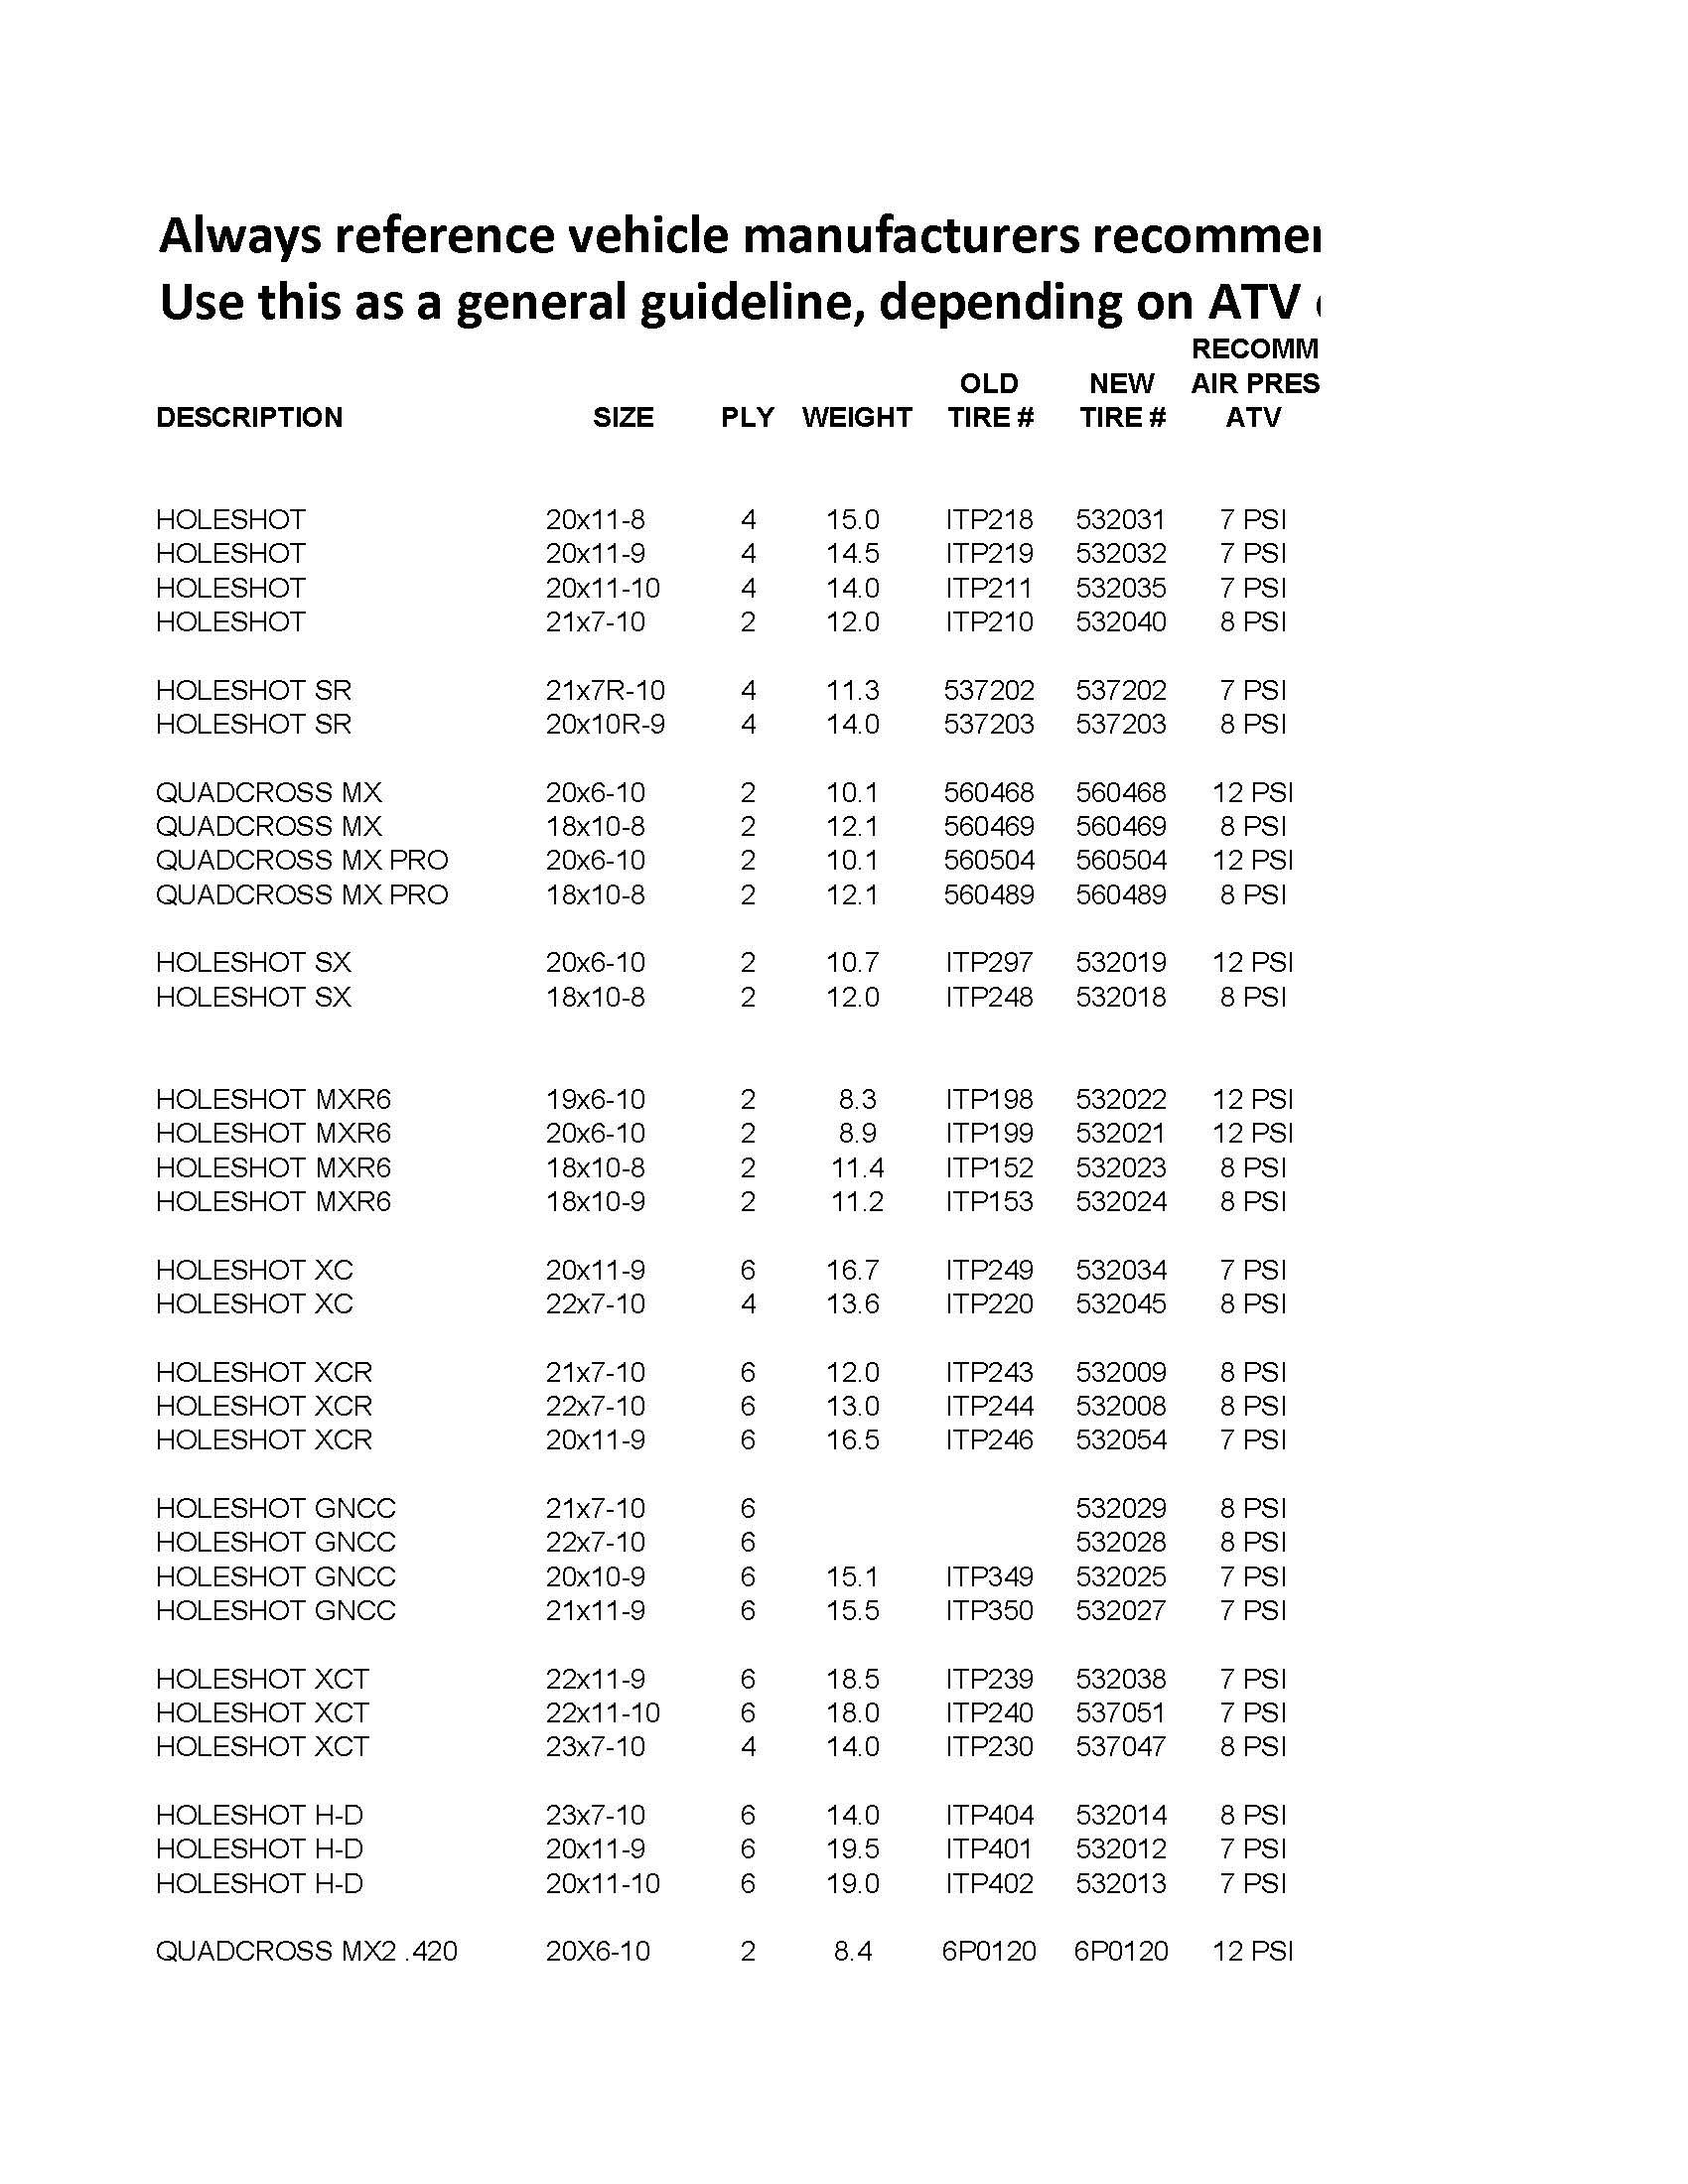 2014 Tire Pressure Chart Page 1 Old Tires Guidelines Chart